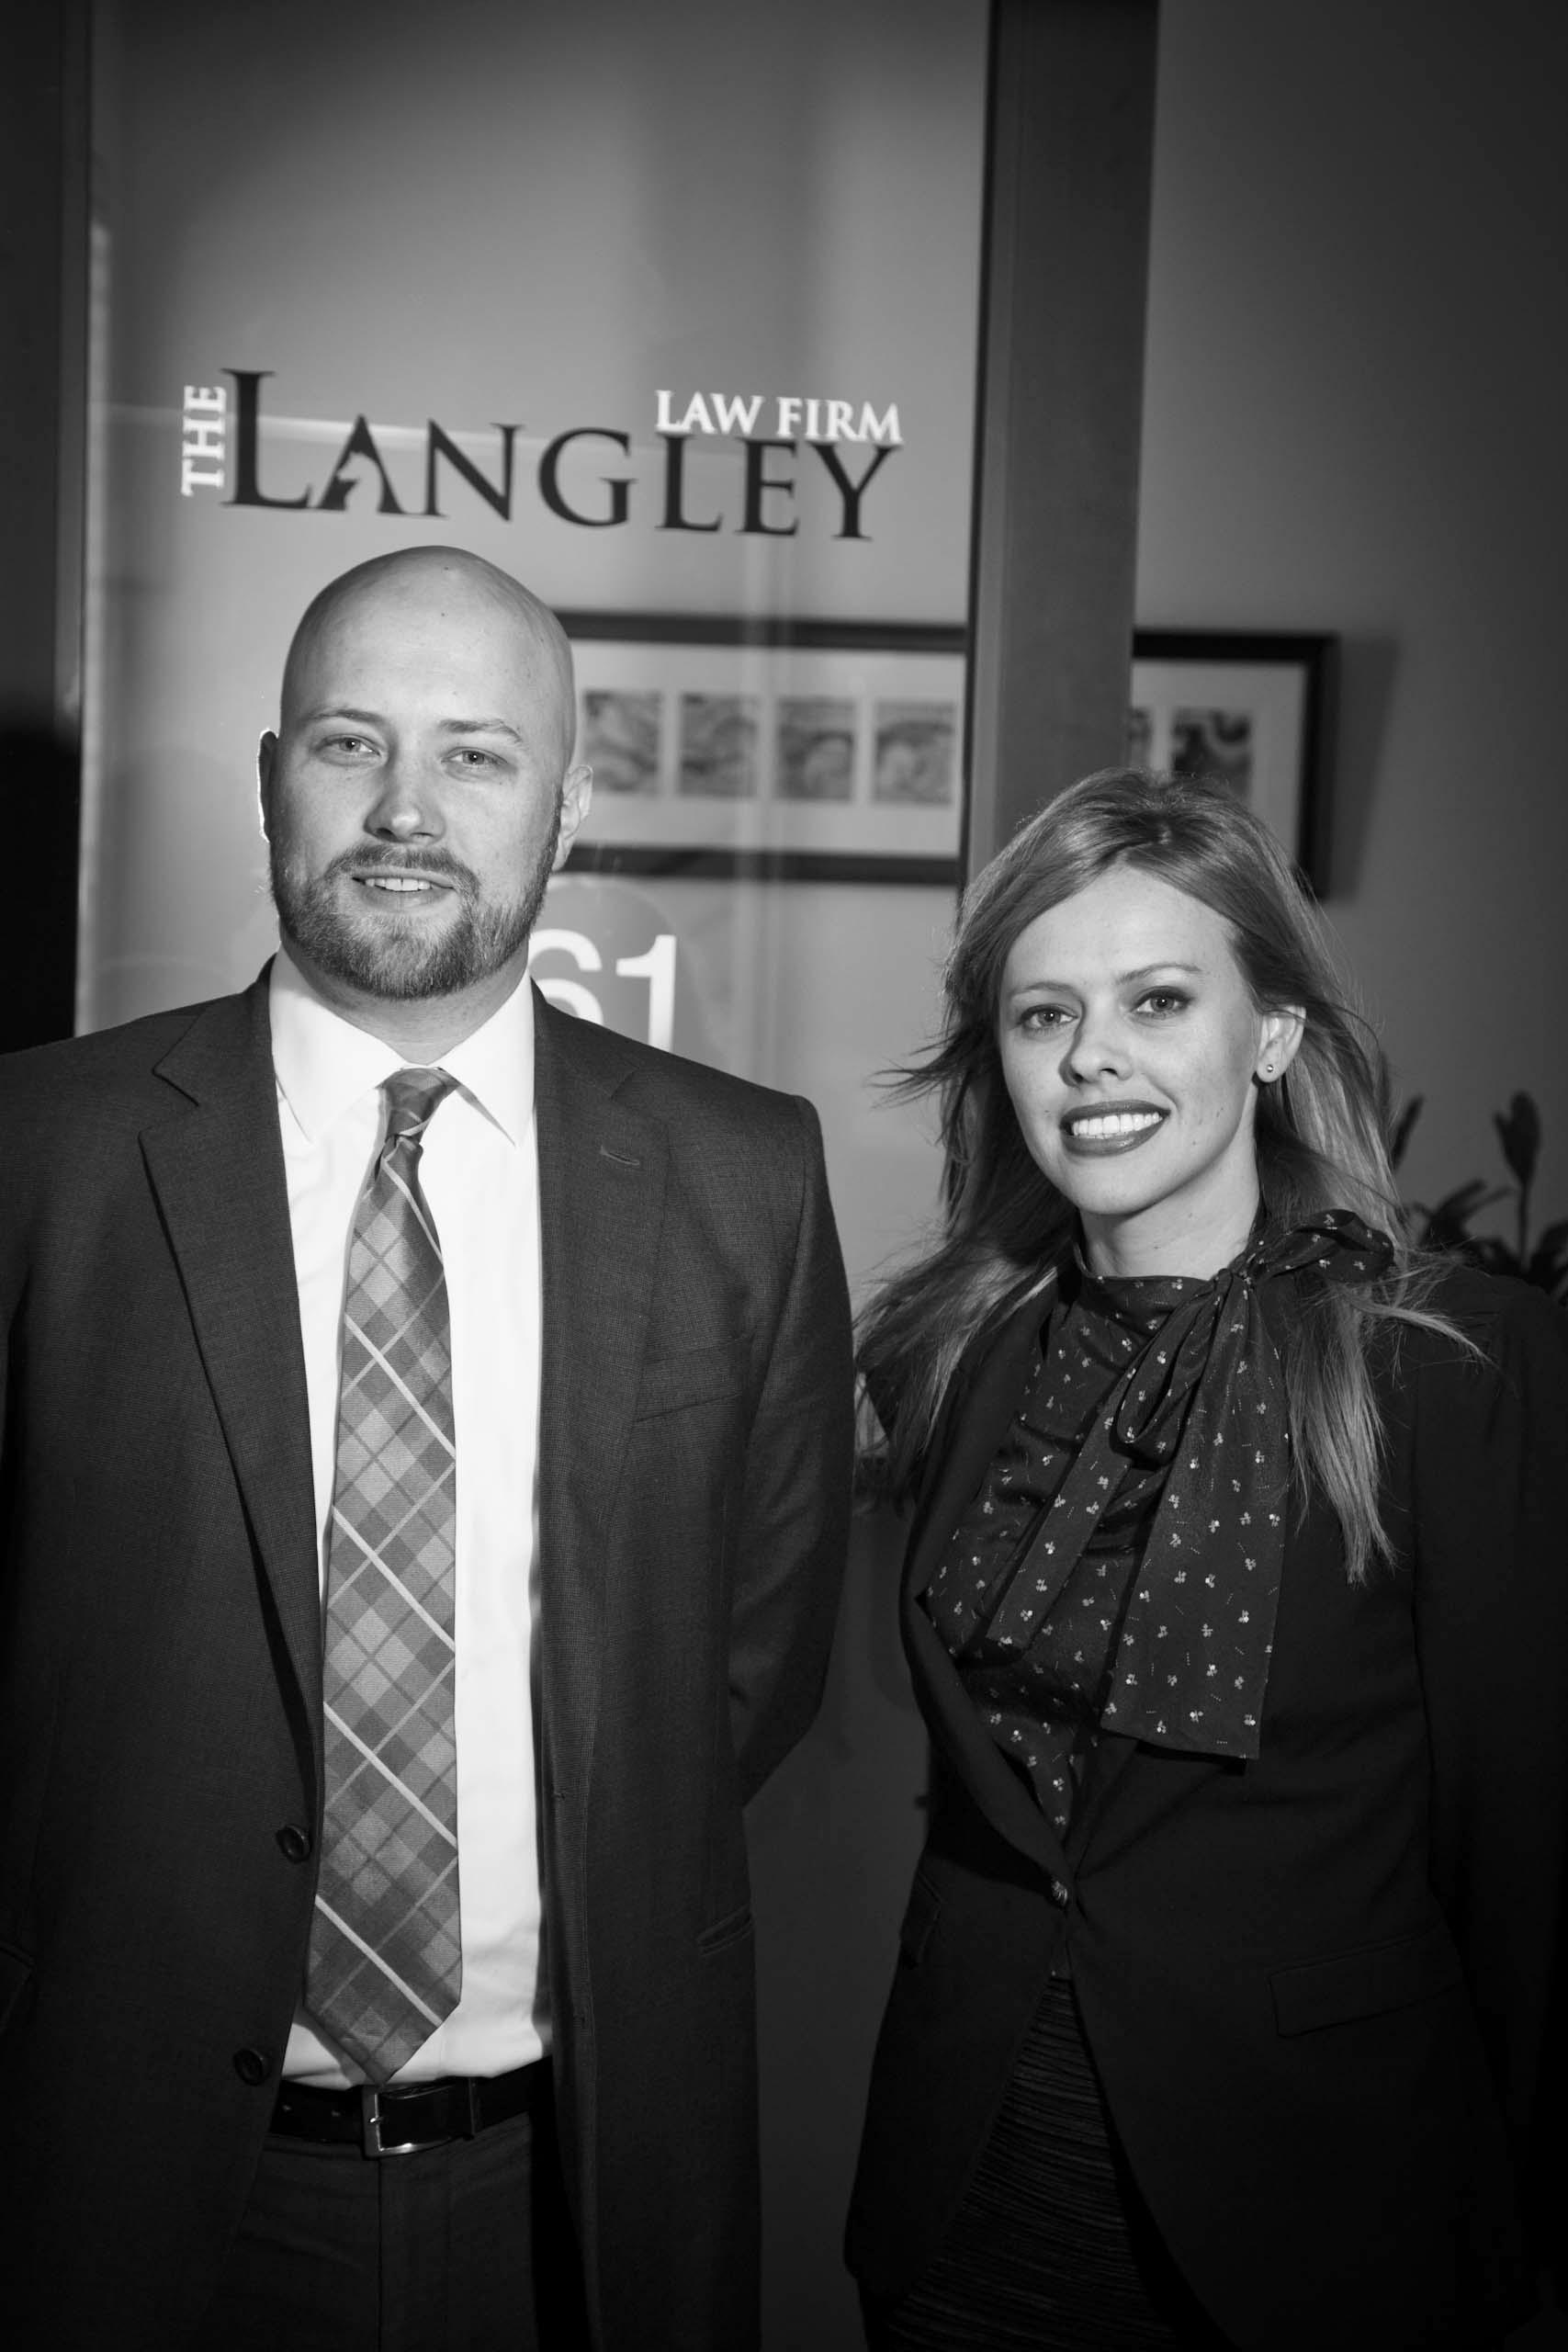 The Langley Law Firm